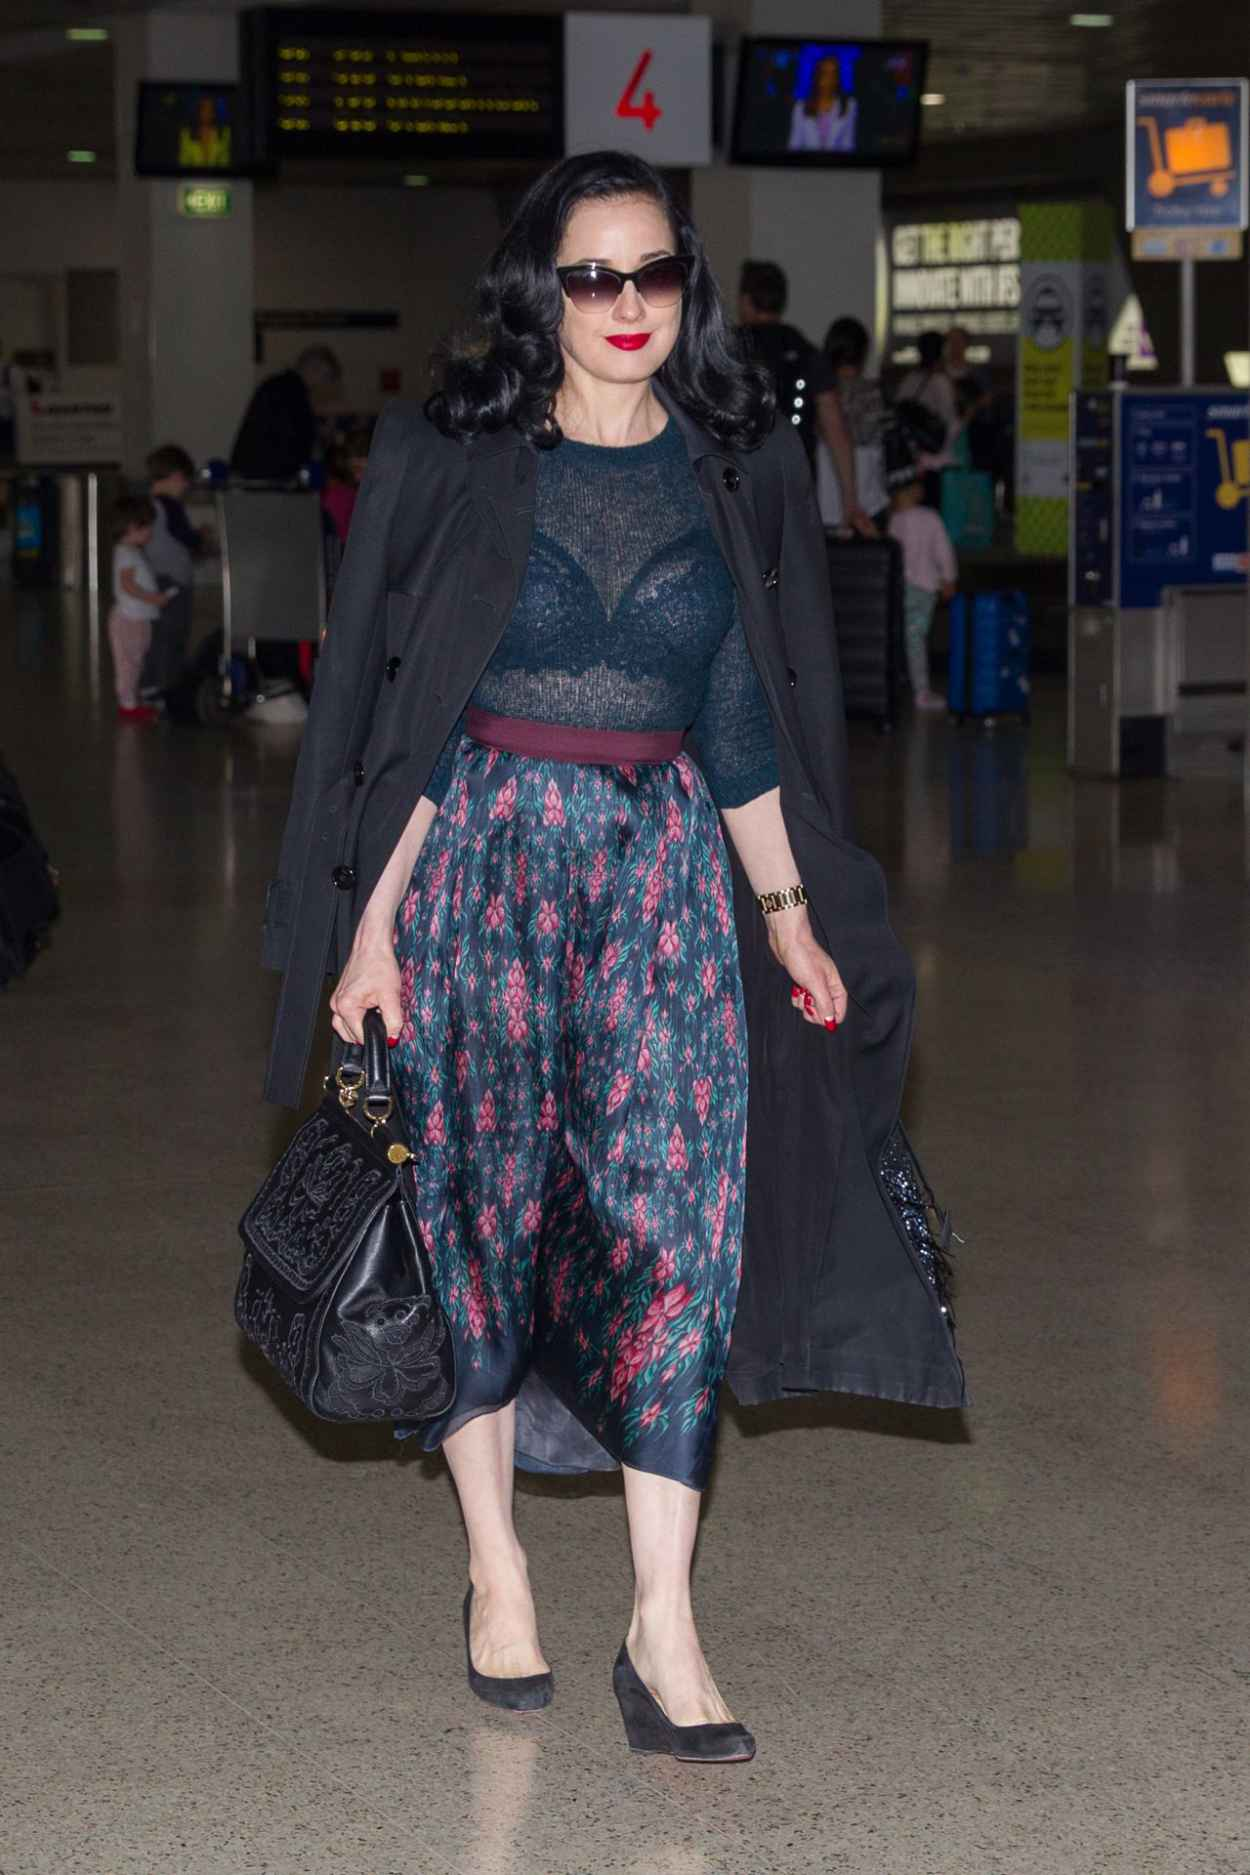 Dita Von Teese - Wearing Blue Top, Blue Skirt and a Large Black Coat - Melbourne Airport-2